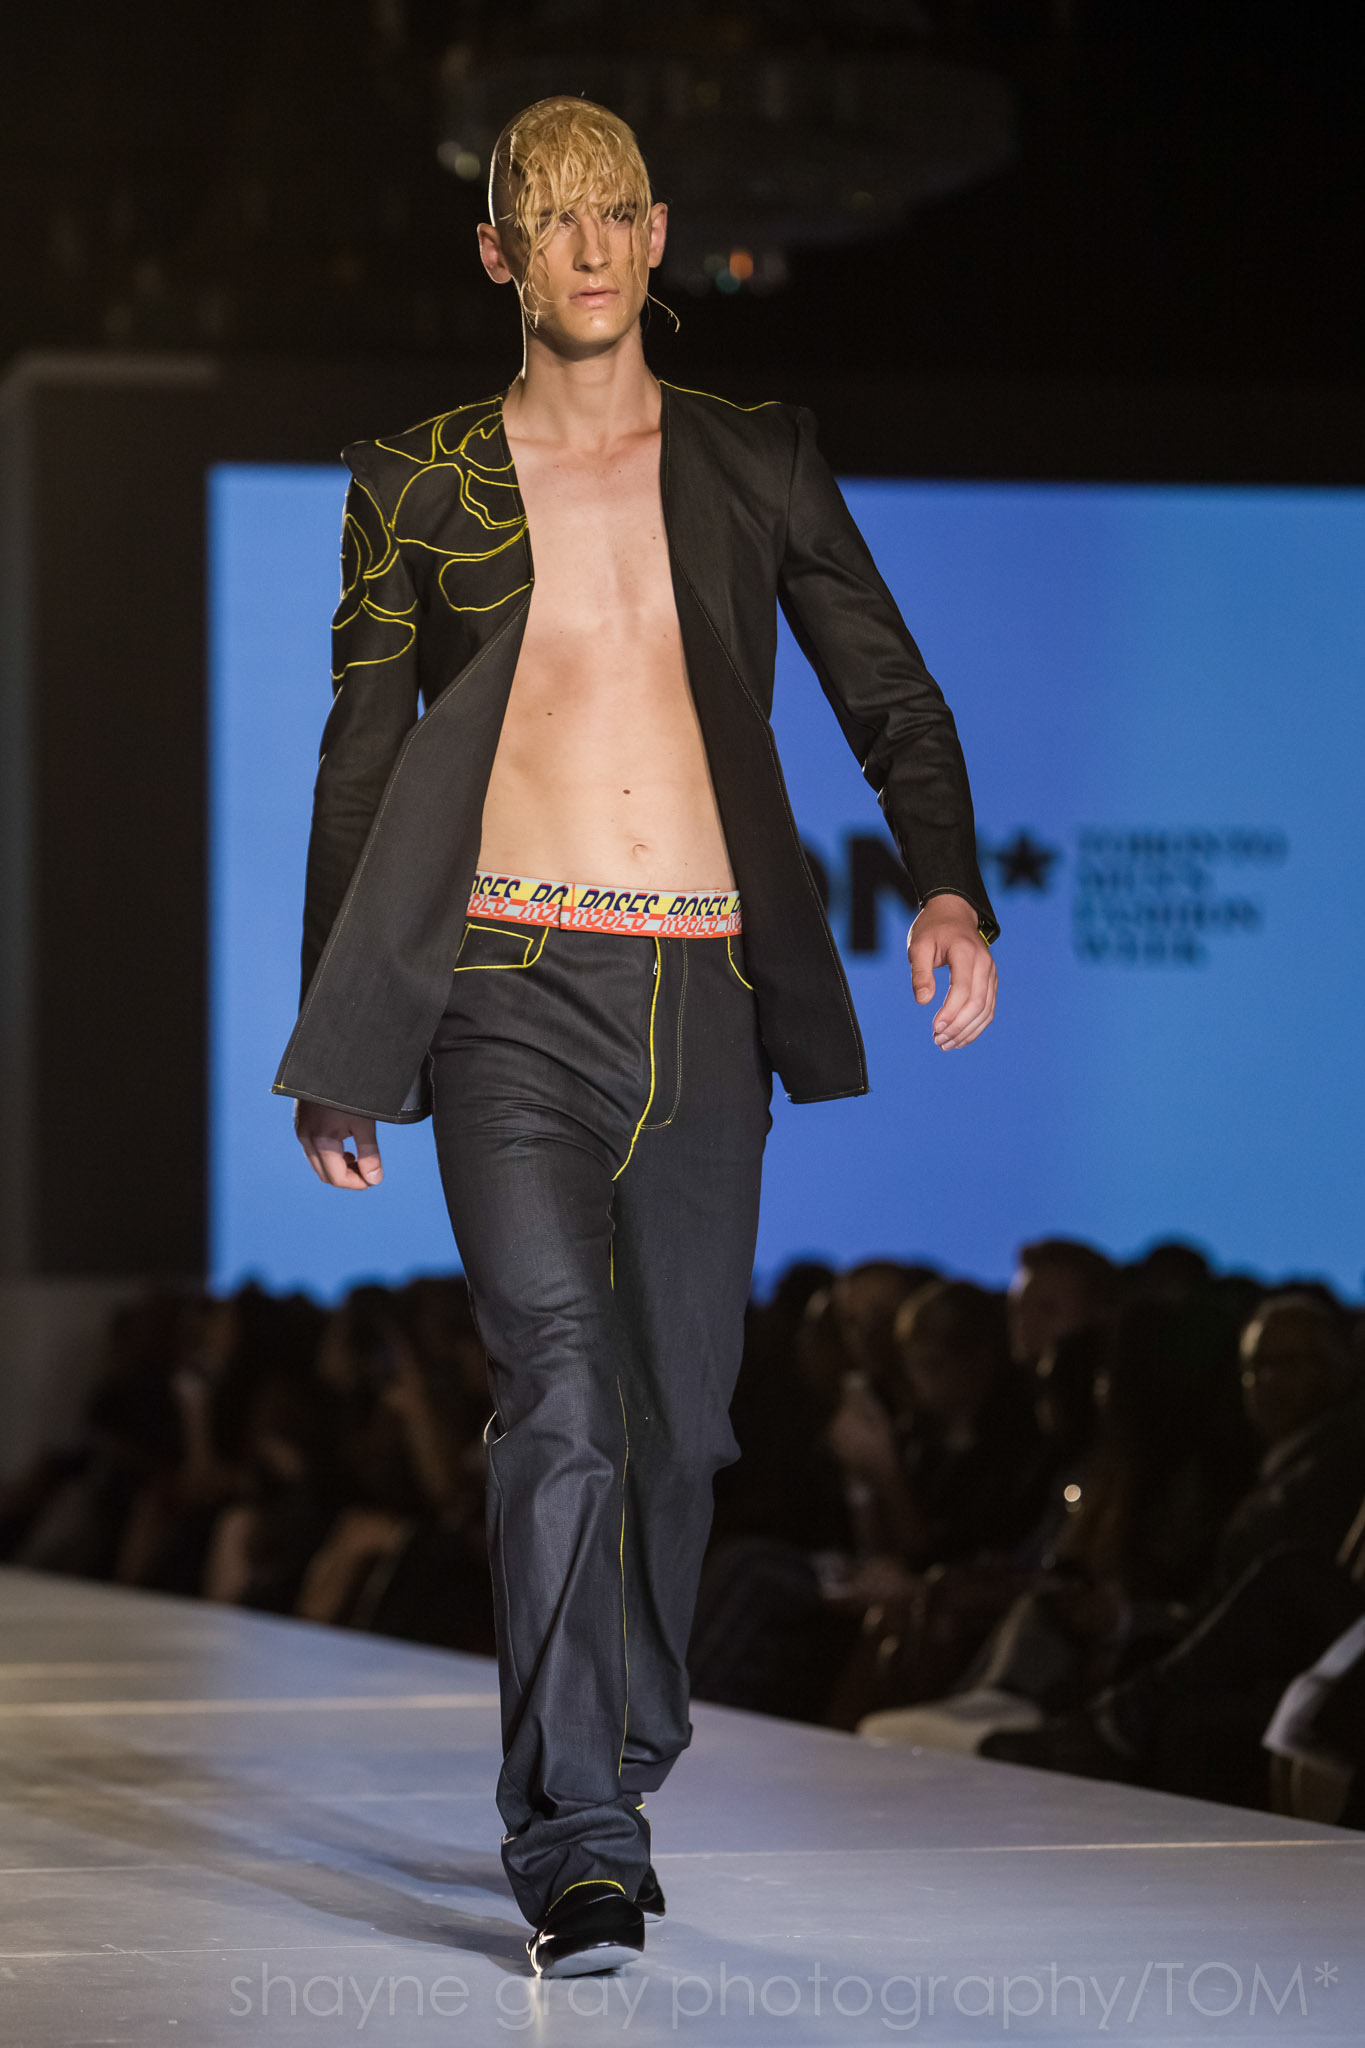 Shayne-Gray-Toronto-men's-fashion_week-TOM-benji-wzw-7069.jpg